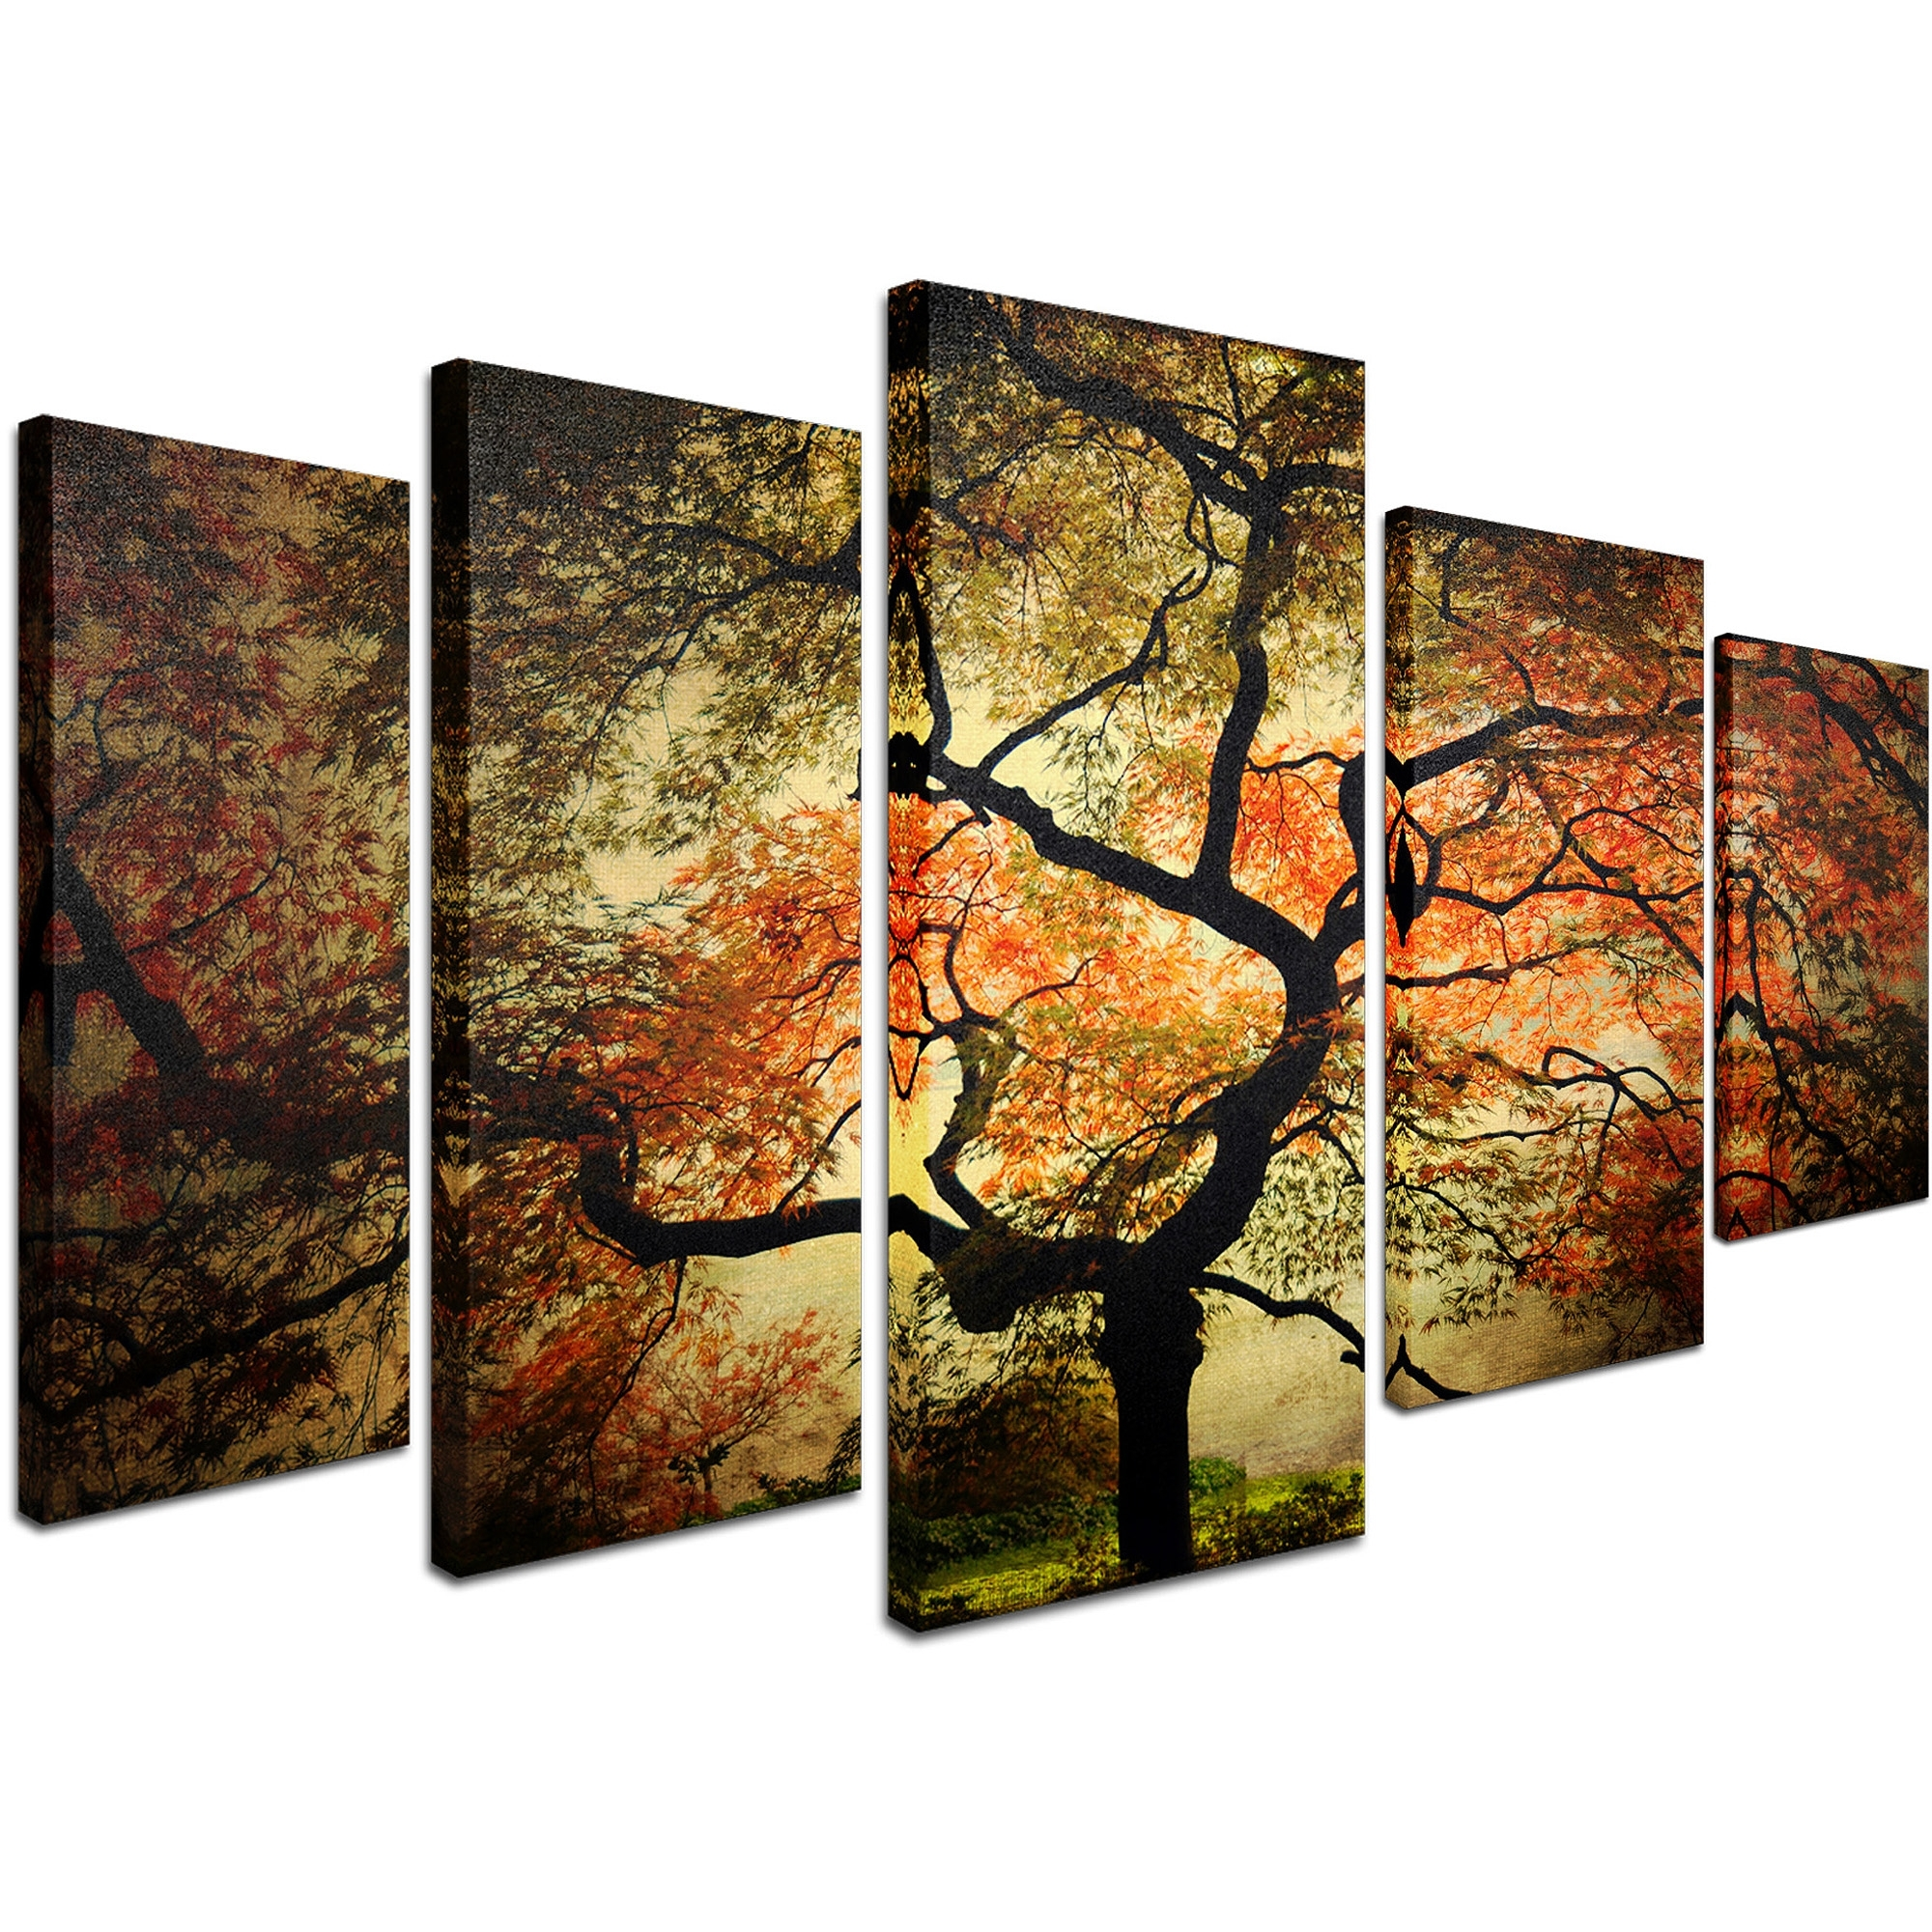 "Trademark Fine Art ""japanese"" Canvas Artphilippe Sainte Laudy Regarding Most Up To Date Japanese Canvas Wall Art (View 12 of 15)"